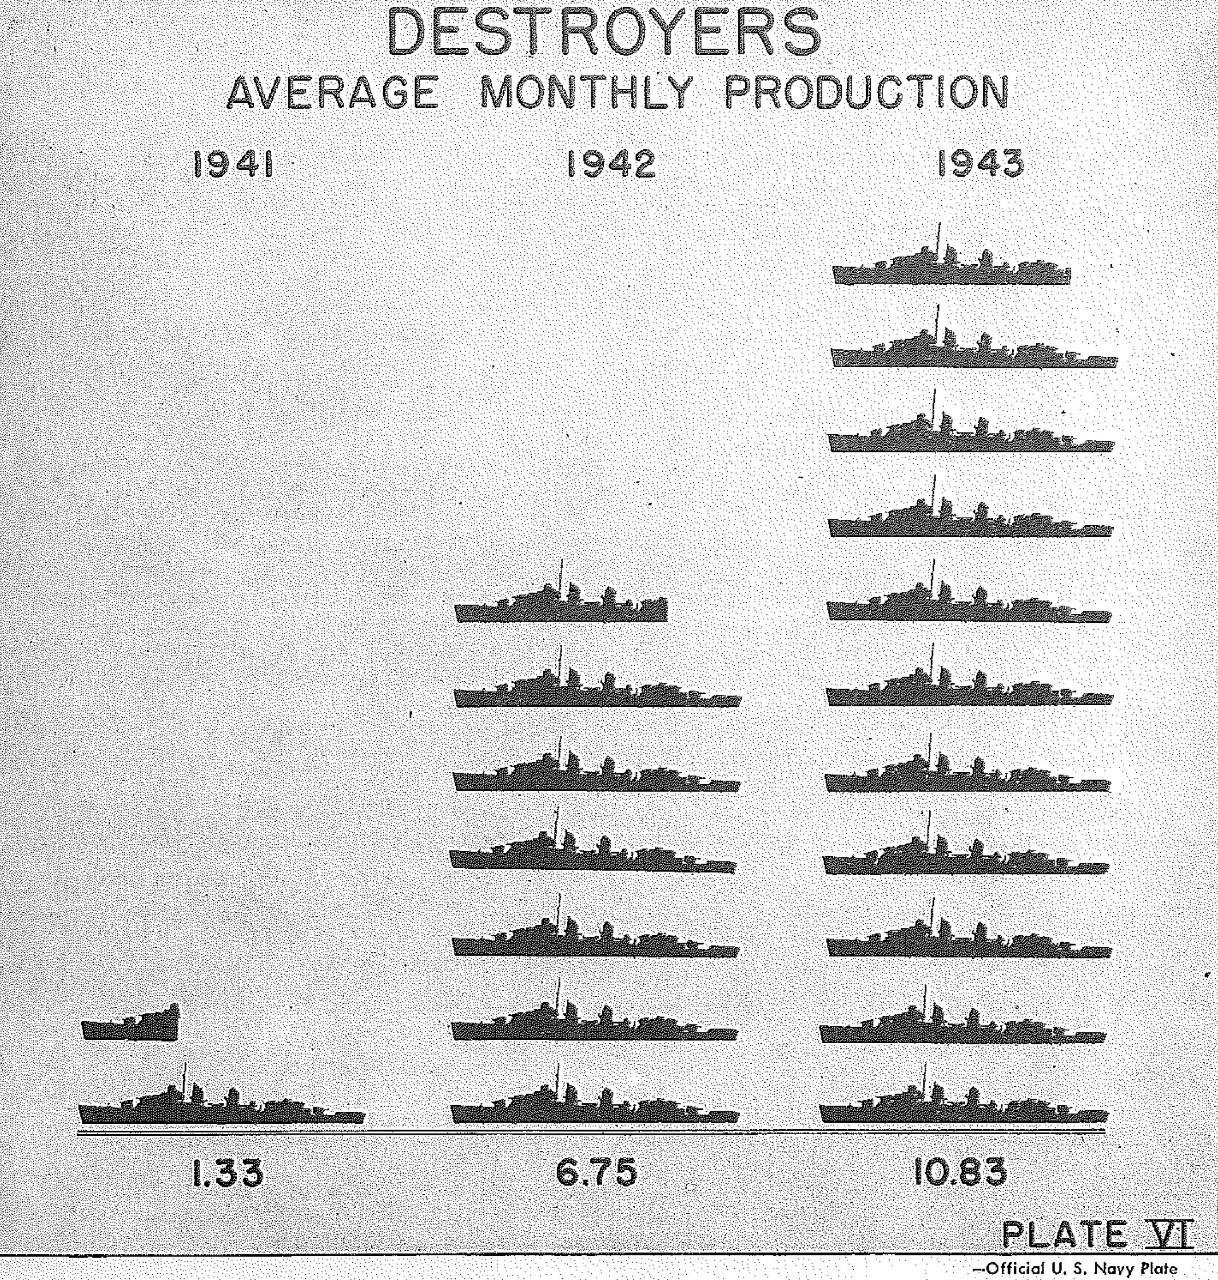 <p>Destroyers average monthly production, Plate VI&nbsp;</p>